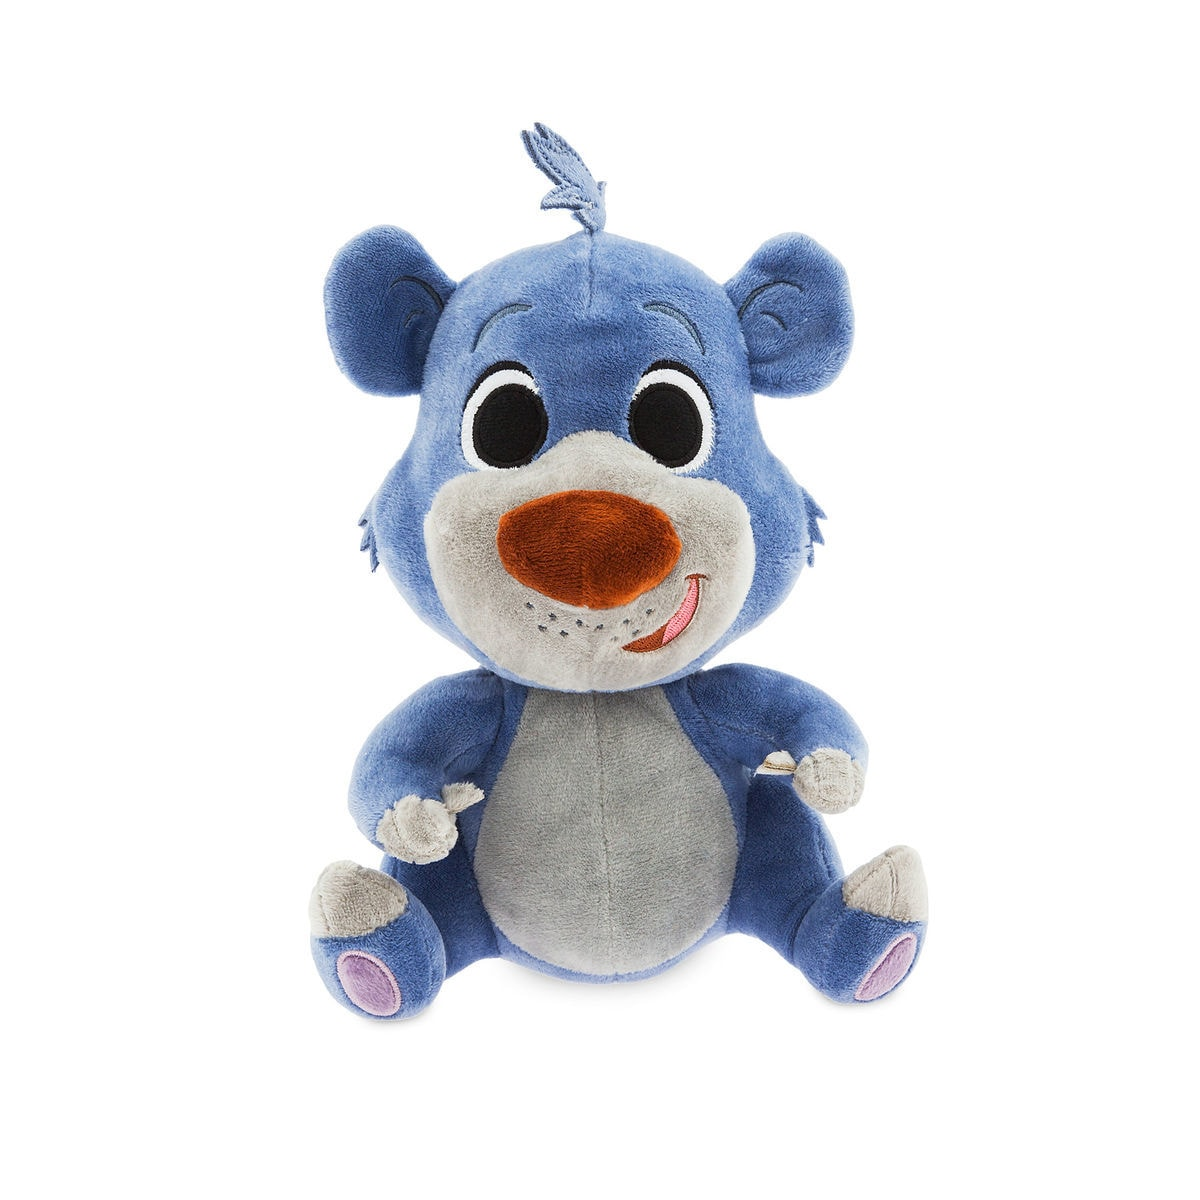 Product Image of Baloo Plush - The Jungle Book - Disney Furrytale friends -  Small   cd6ee5477